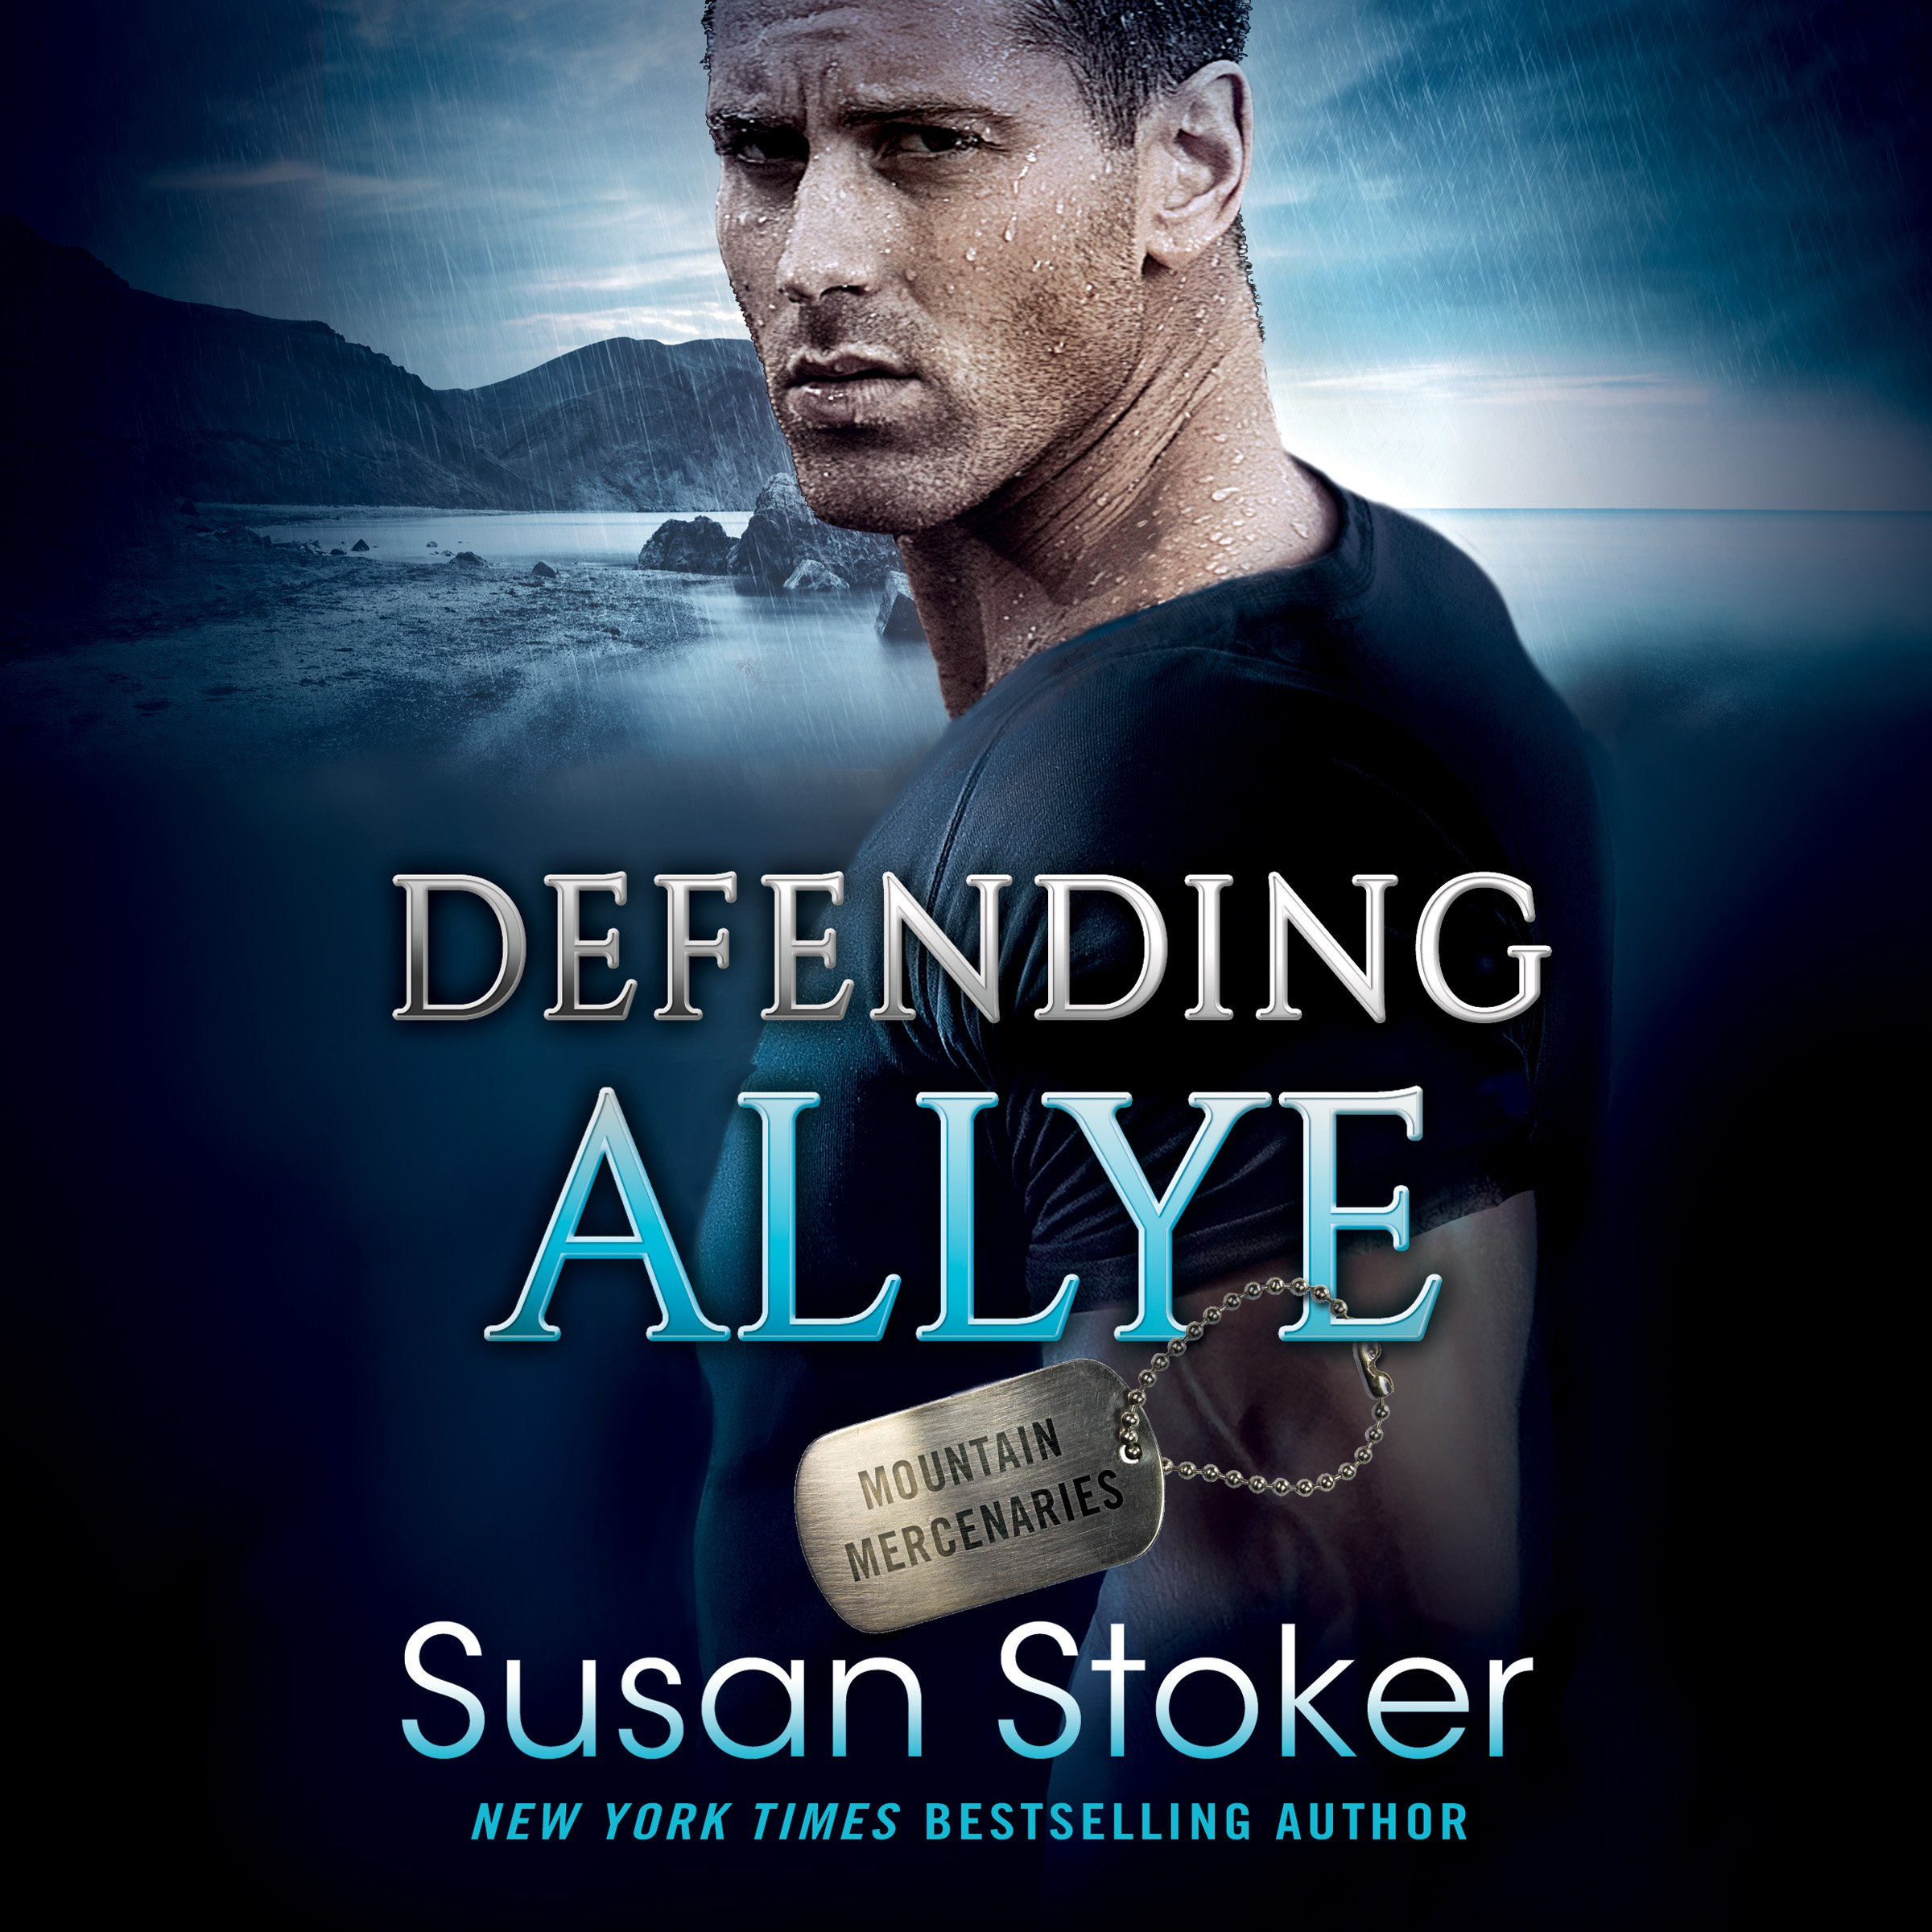 Defending Allye: Mountain Mercenaries Series, Book 1